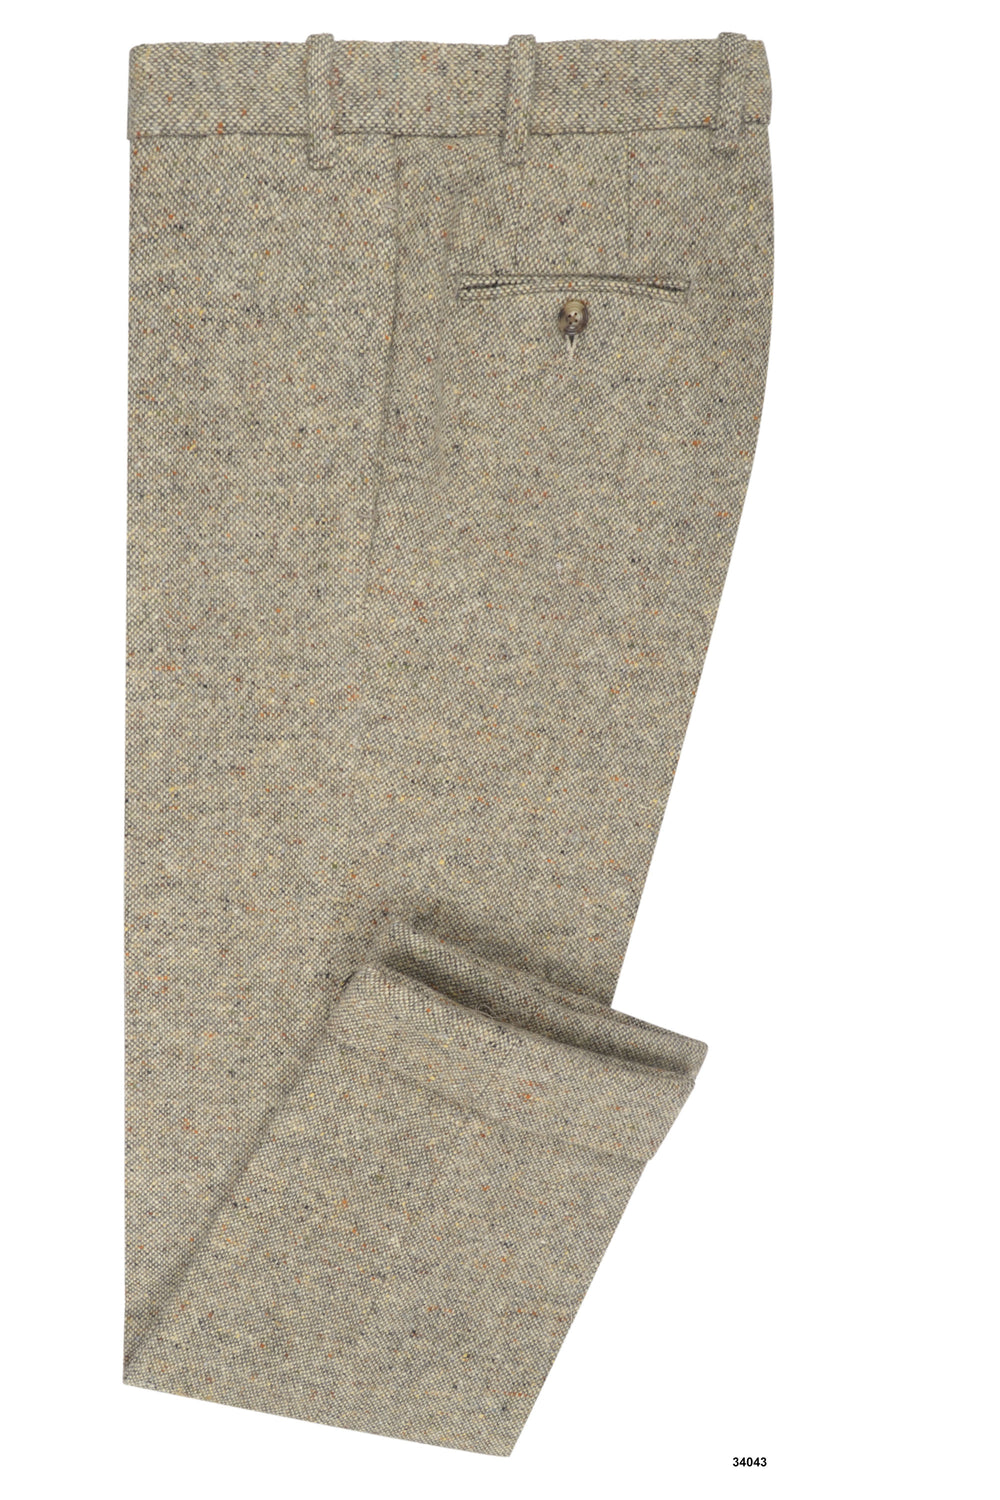 Molloy Plain Donegal Tweed Pants - Cream